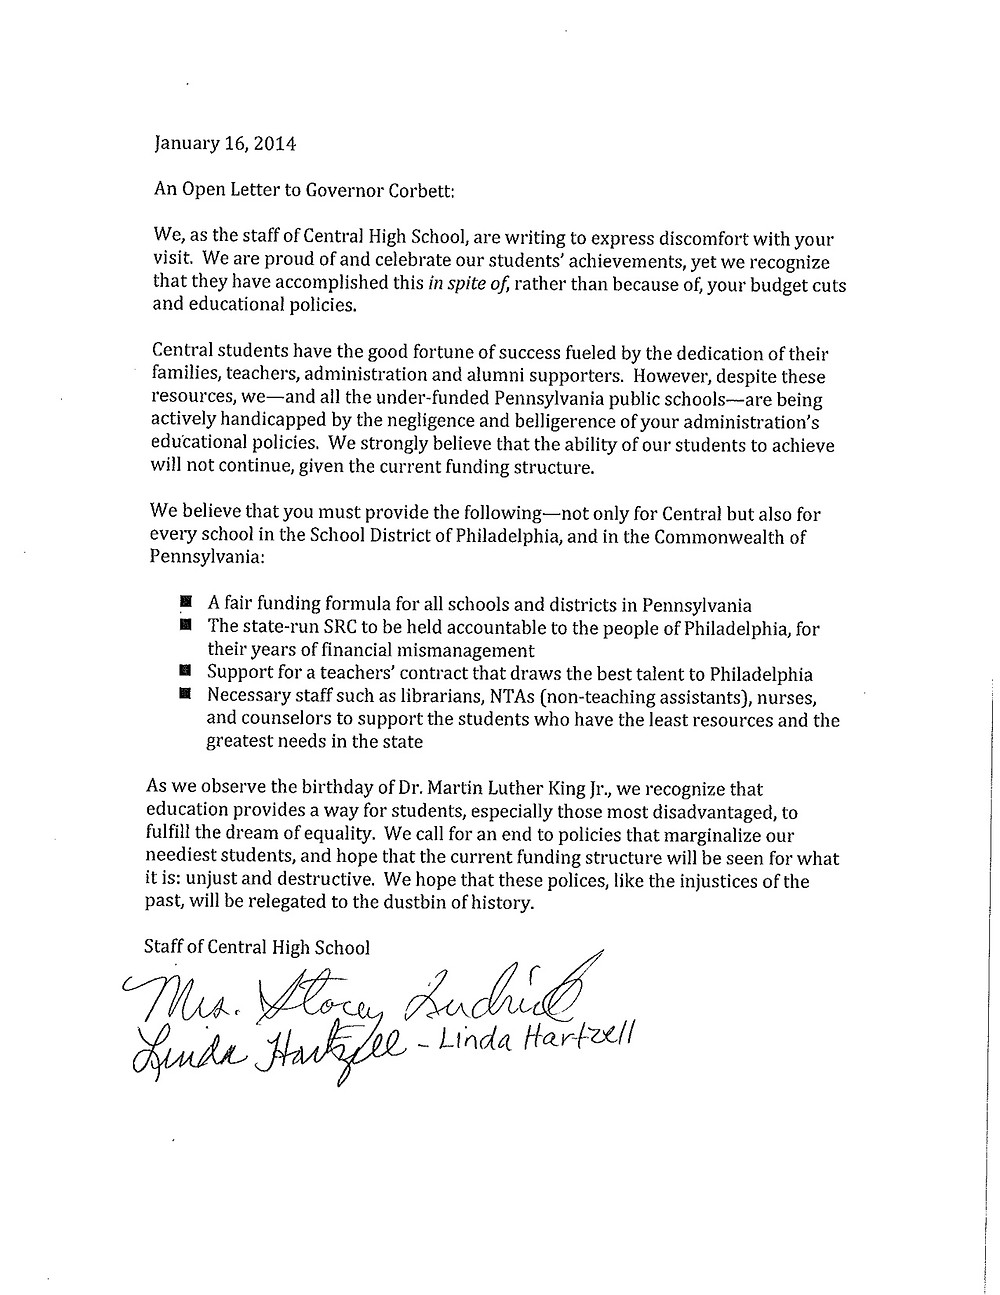 CentralHigh open letter to Corbett4a